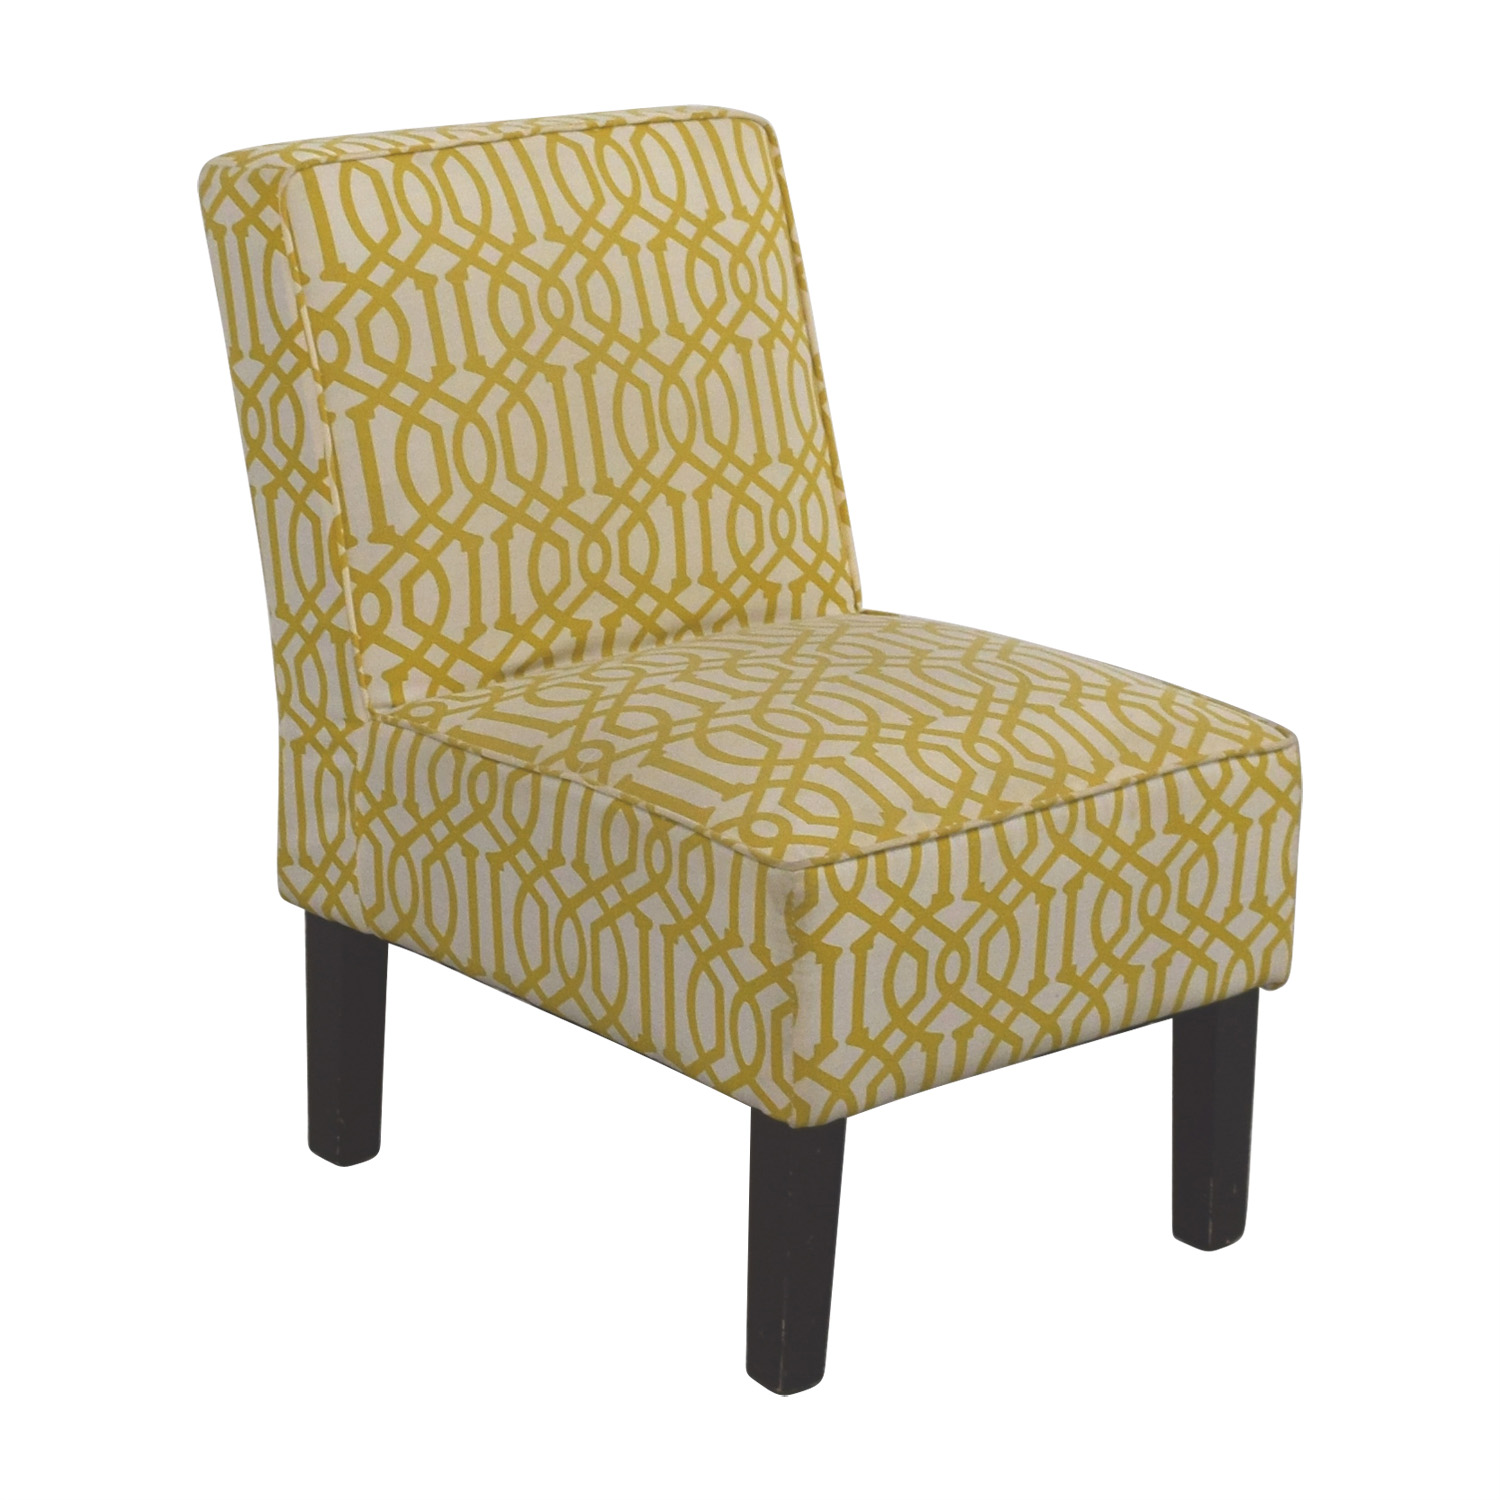 Accent Chairs Sale 85 Off Yellow And White Accent Chair Chairs